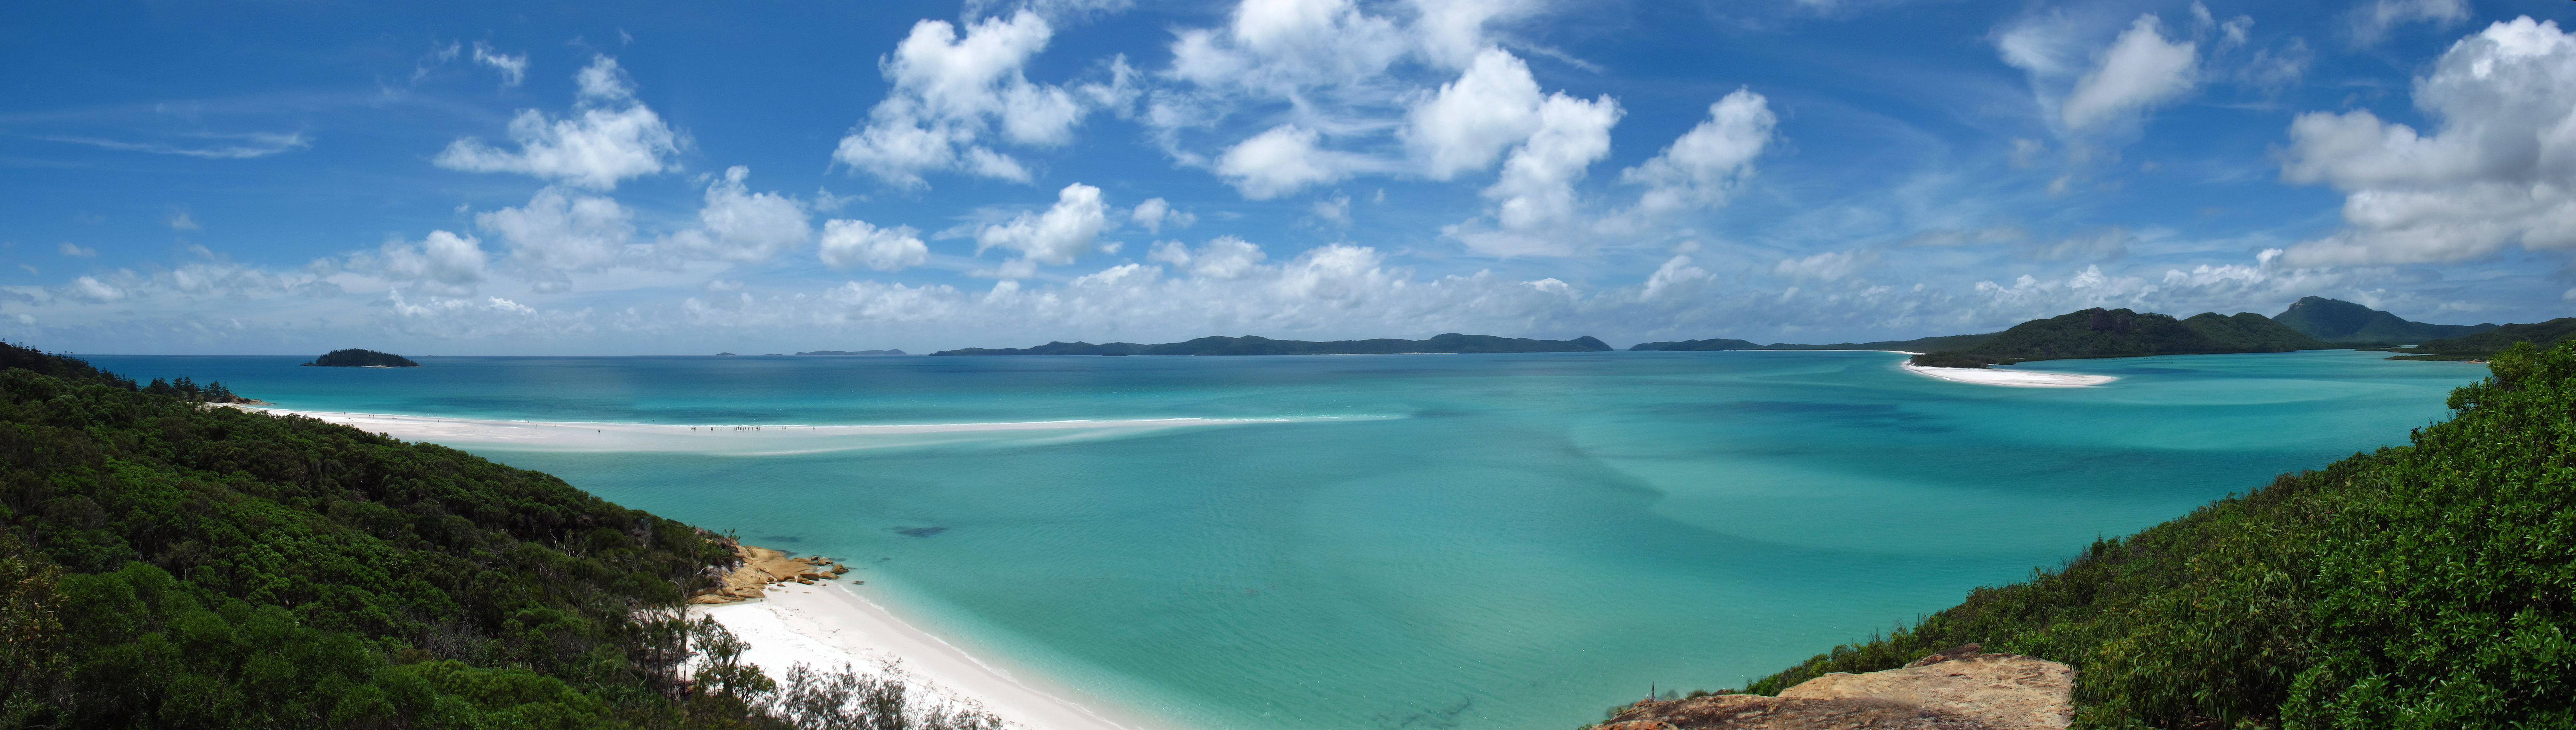 Great Barrier Reef - Reefsleep - Sailing Whitsundays Australia